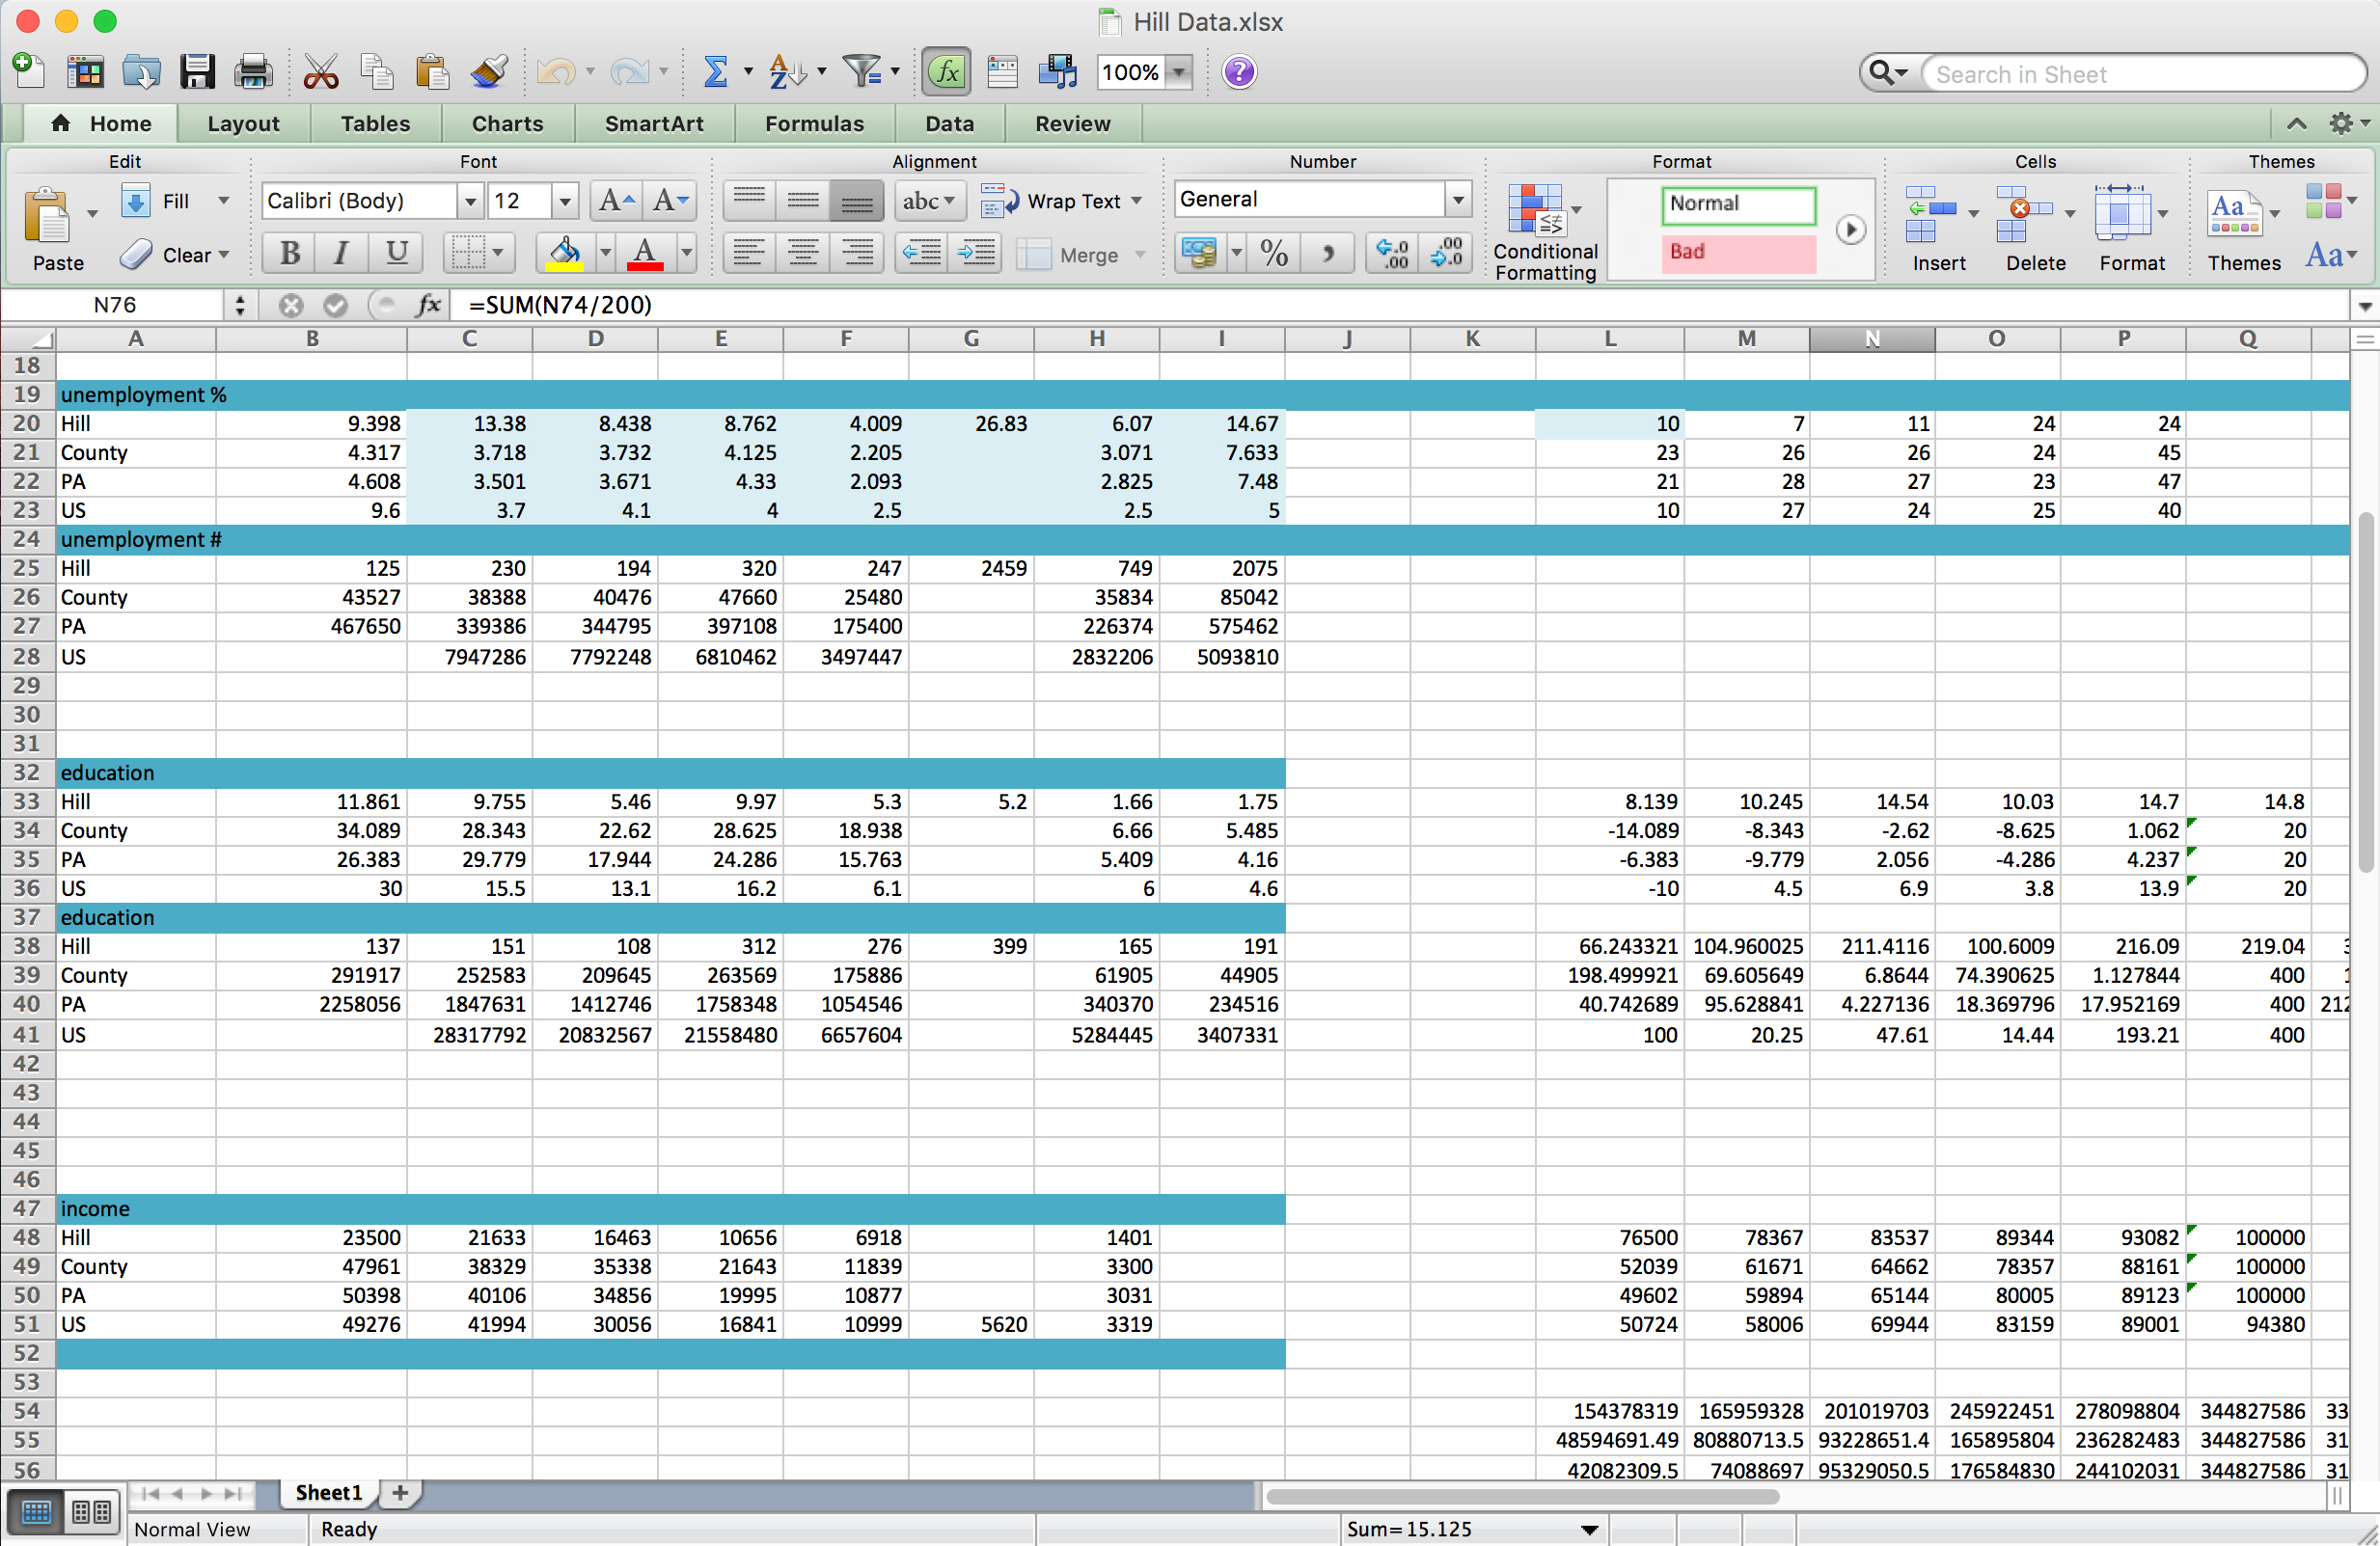 After collecting data I developed formulas to proportionally translate the information to set the typography.